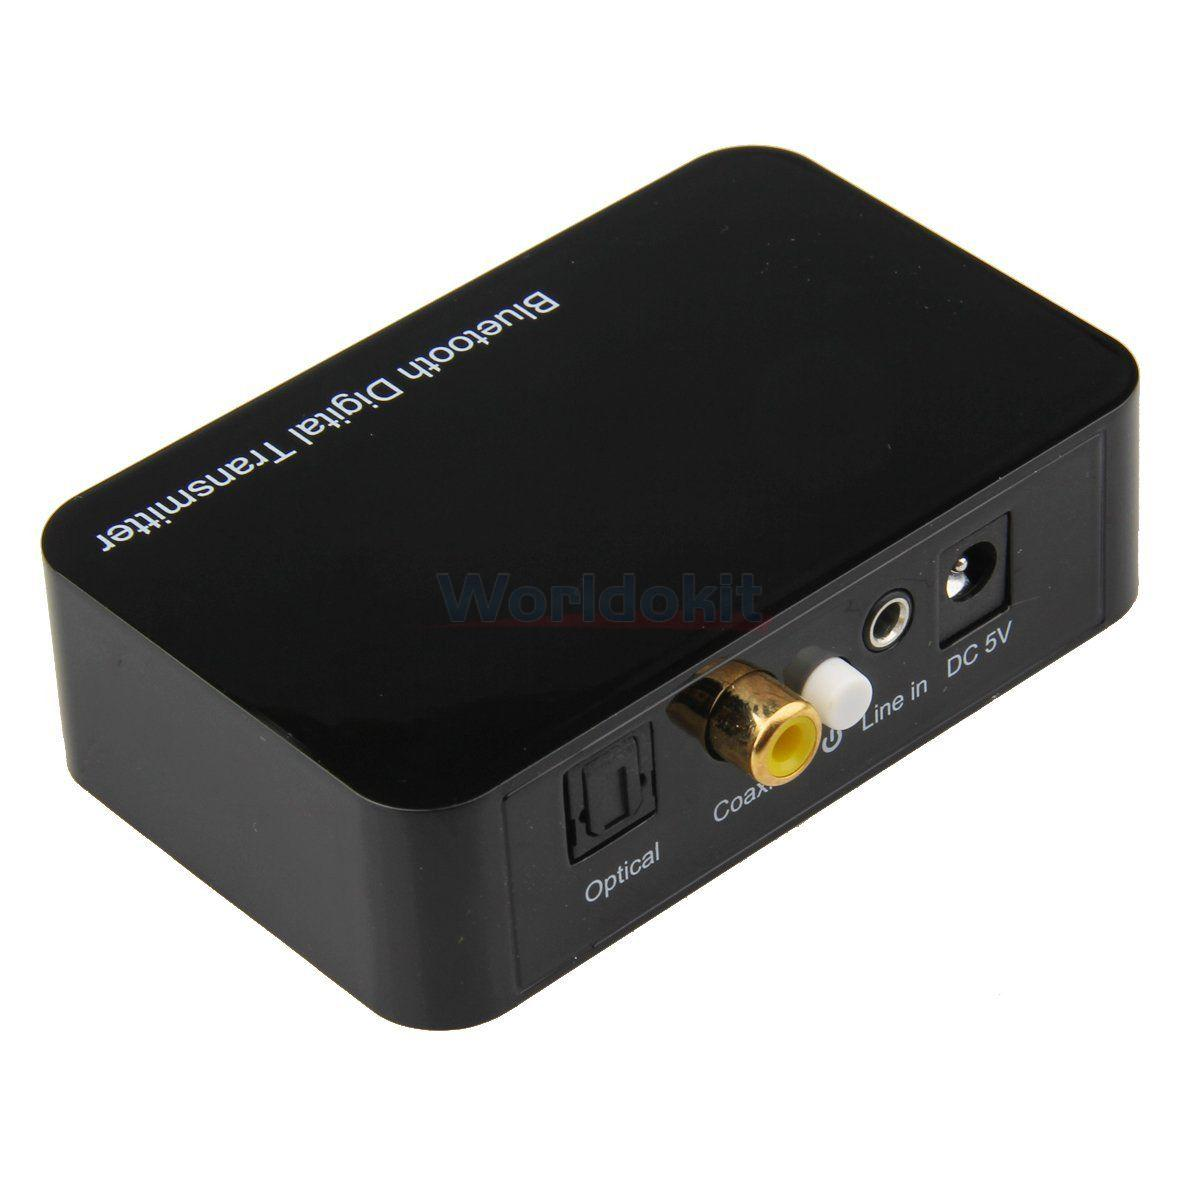 Fiber Optic Coaxial 35mm Audio Bluetooth Digtial Transmitter For Tv With Pc Dvd Box